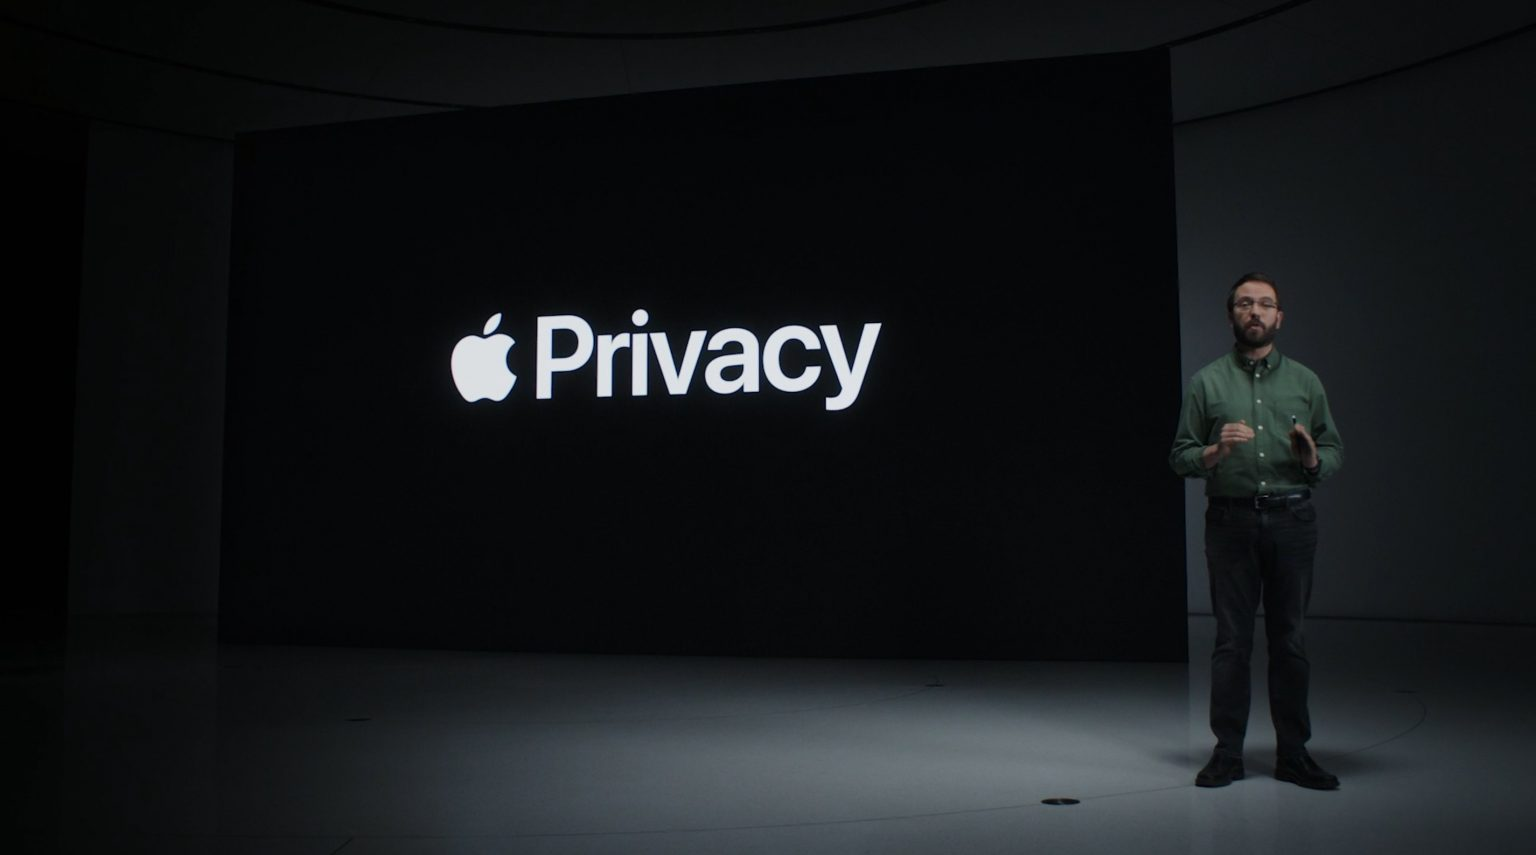 Apple Privacy Slide from WWDC 2021